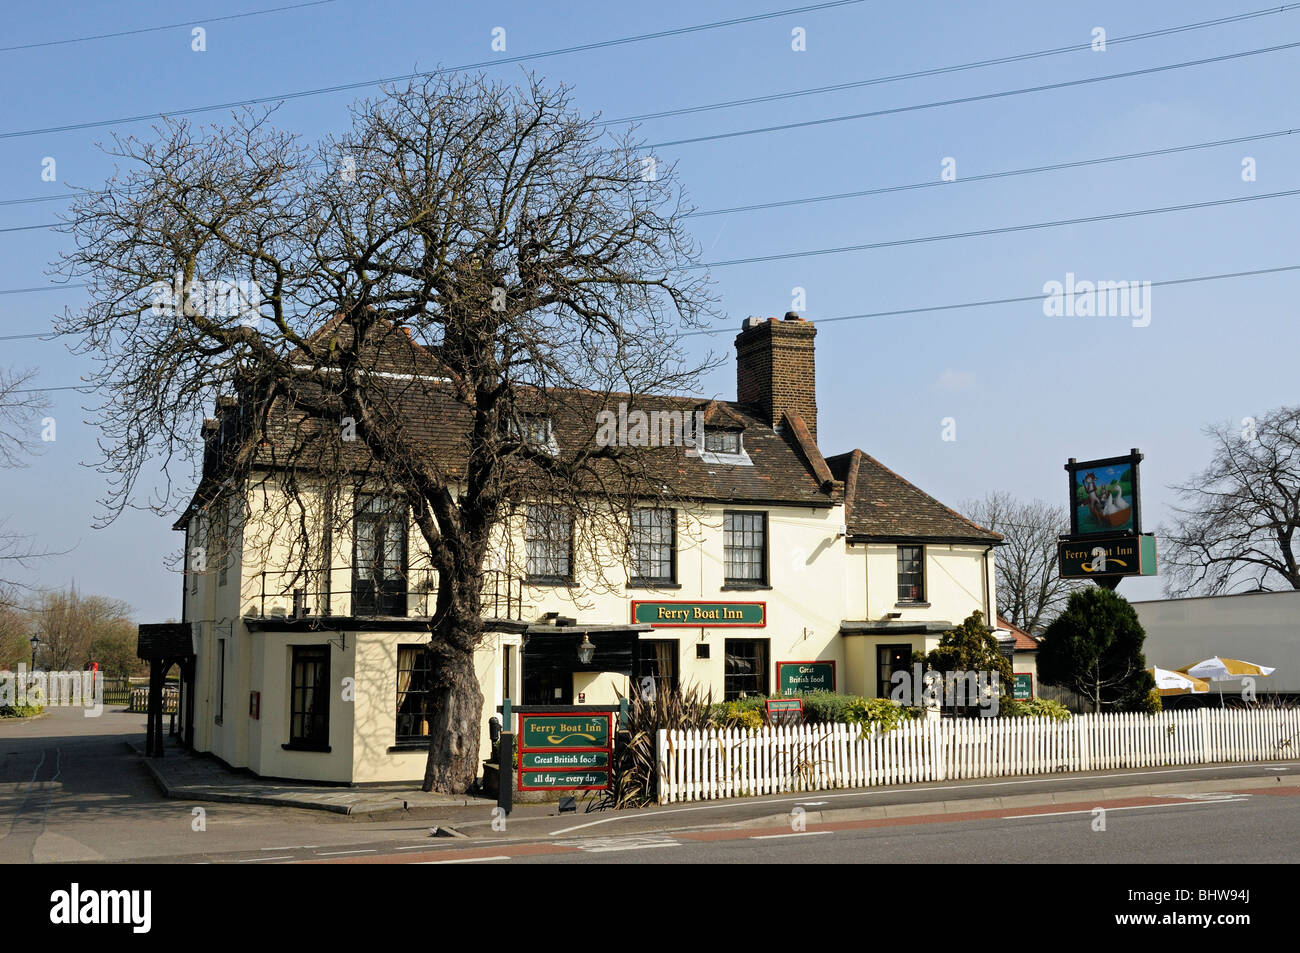 Ferry Boat Inn Walthamstow London England UK - Stock Image